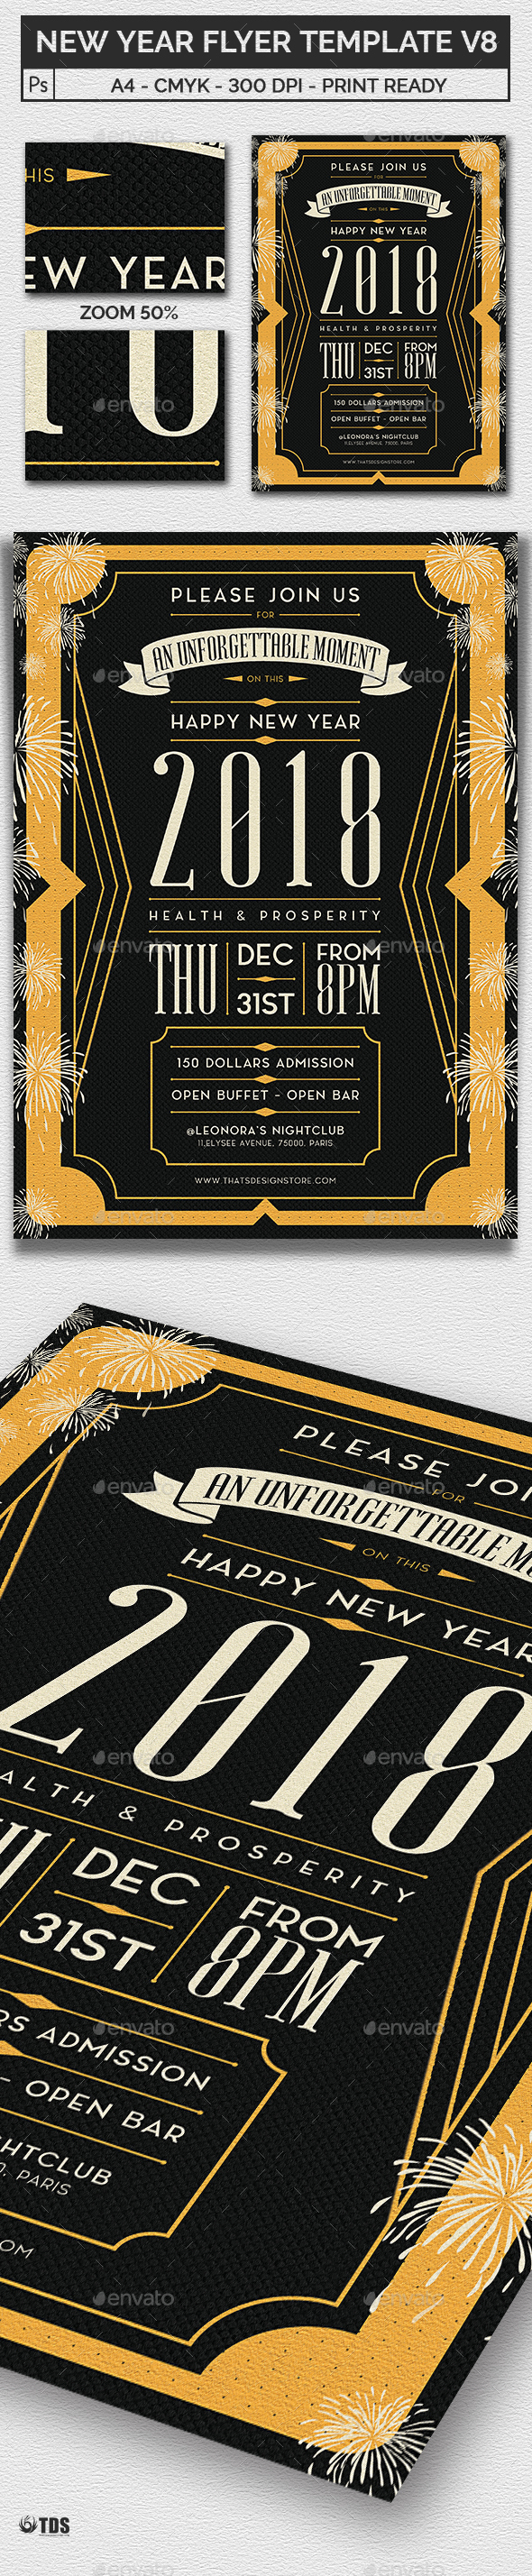 GraphicRiver New Year Flyer Template V8 20921350